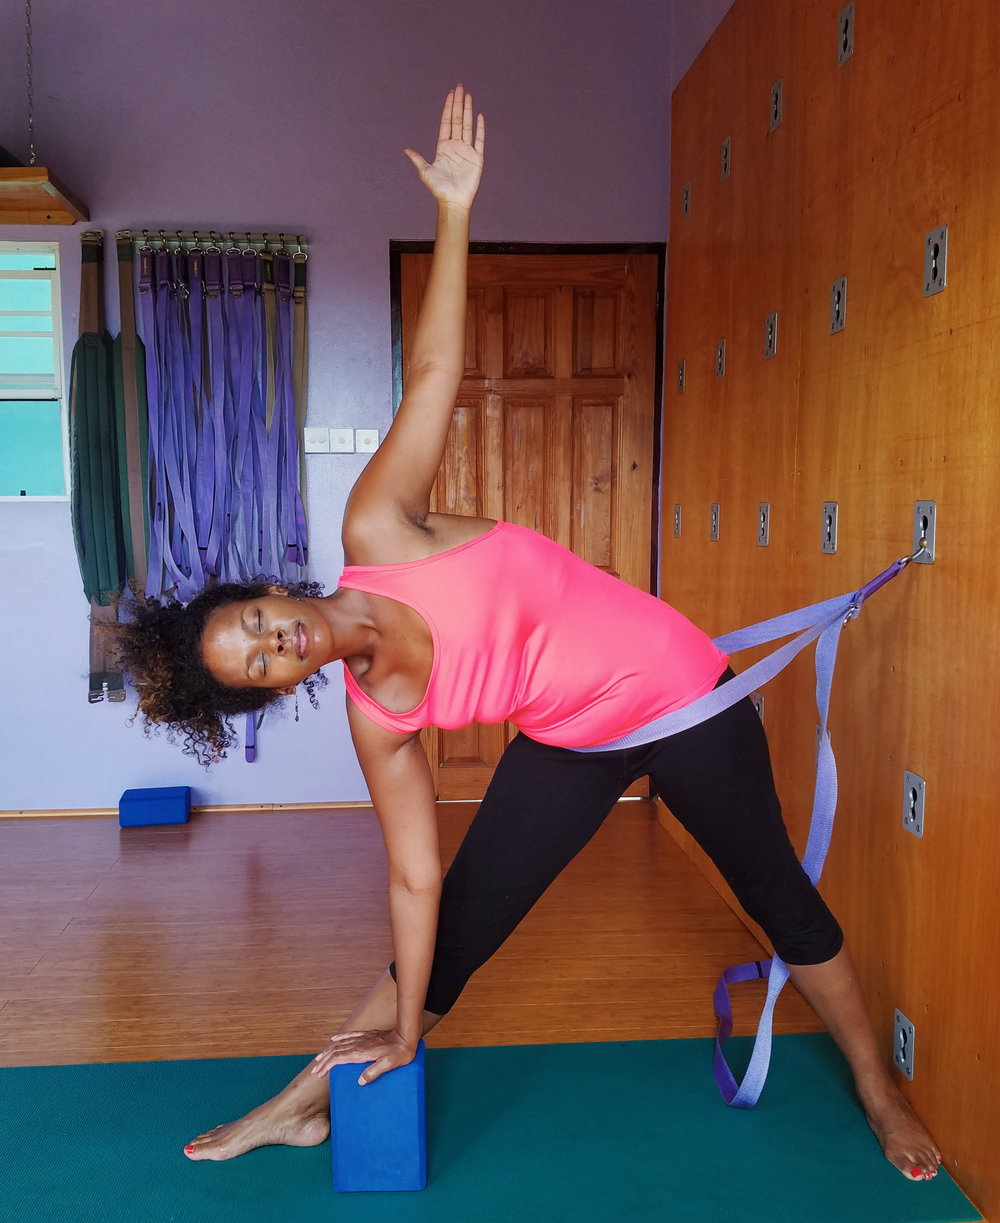 Carly Soul      writer, Reiki practitioner, therapeutic dance movement guide and soul worker, in Triangle Pose using the Spice Harmony Yoga wall system.